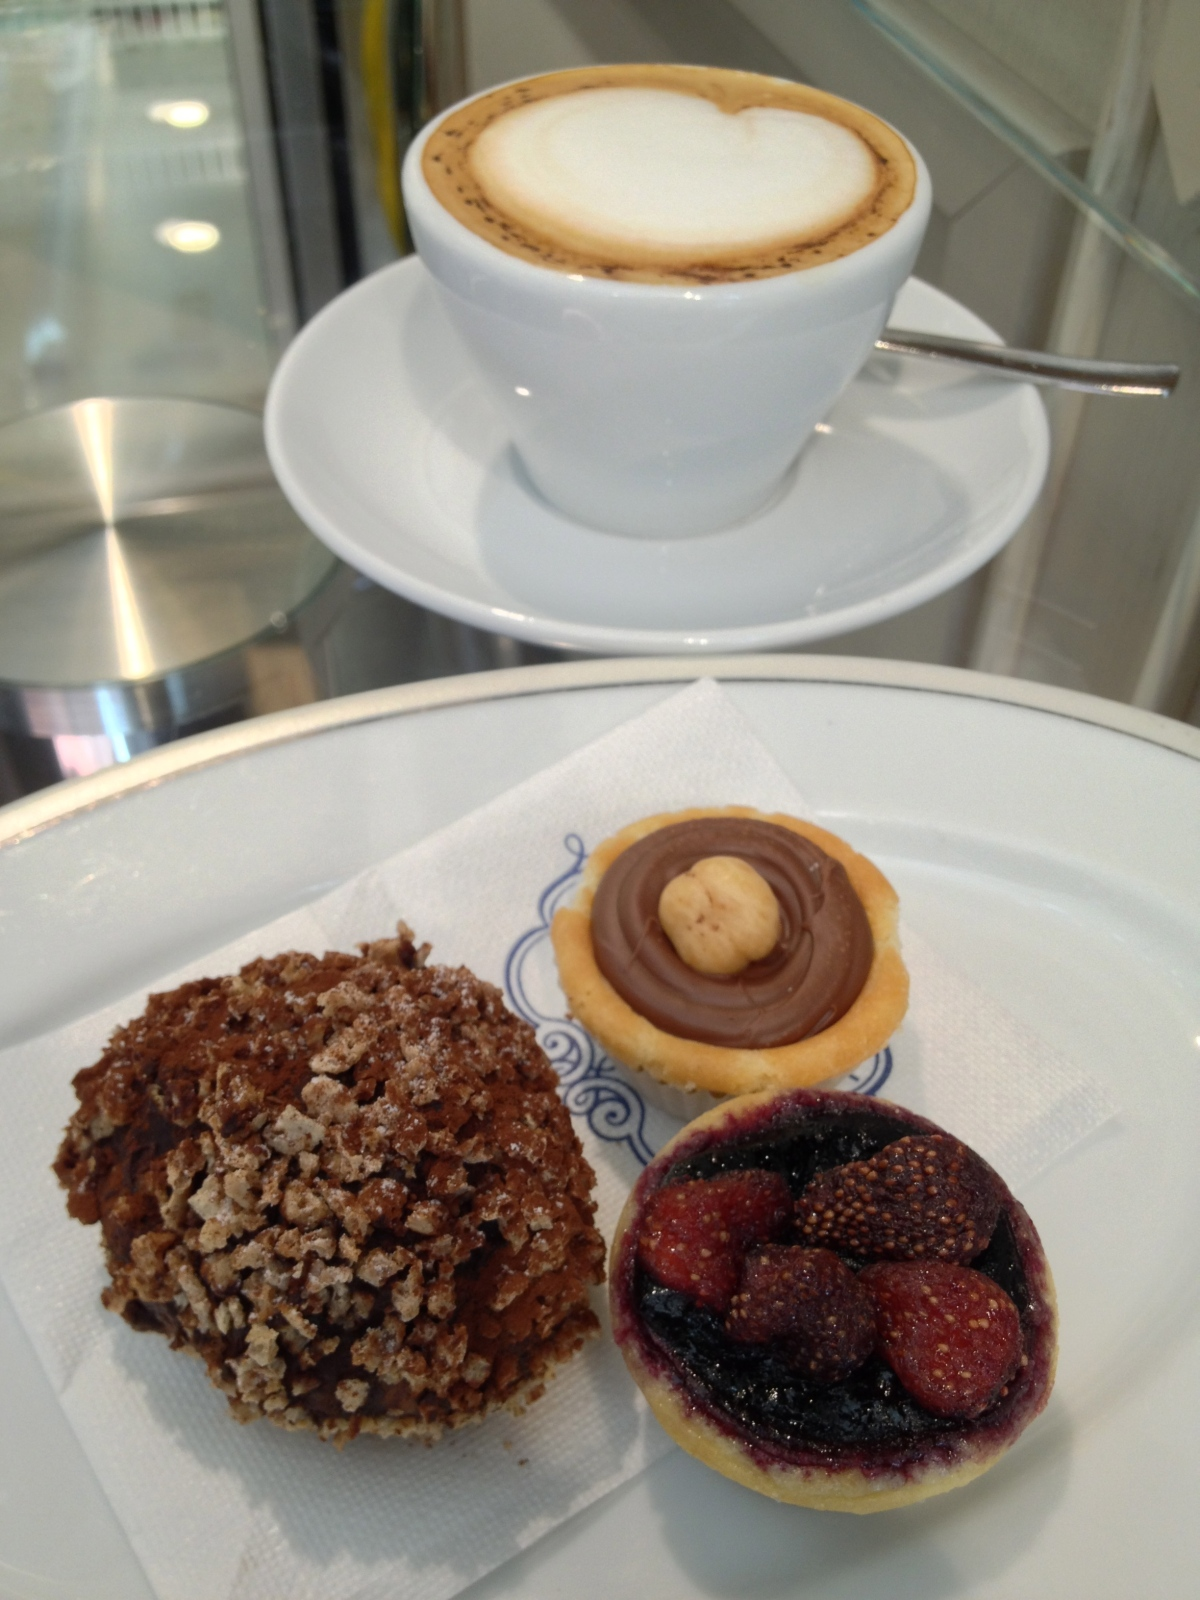 Cappuccino, Pastries